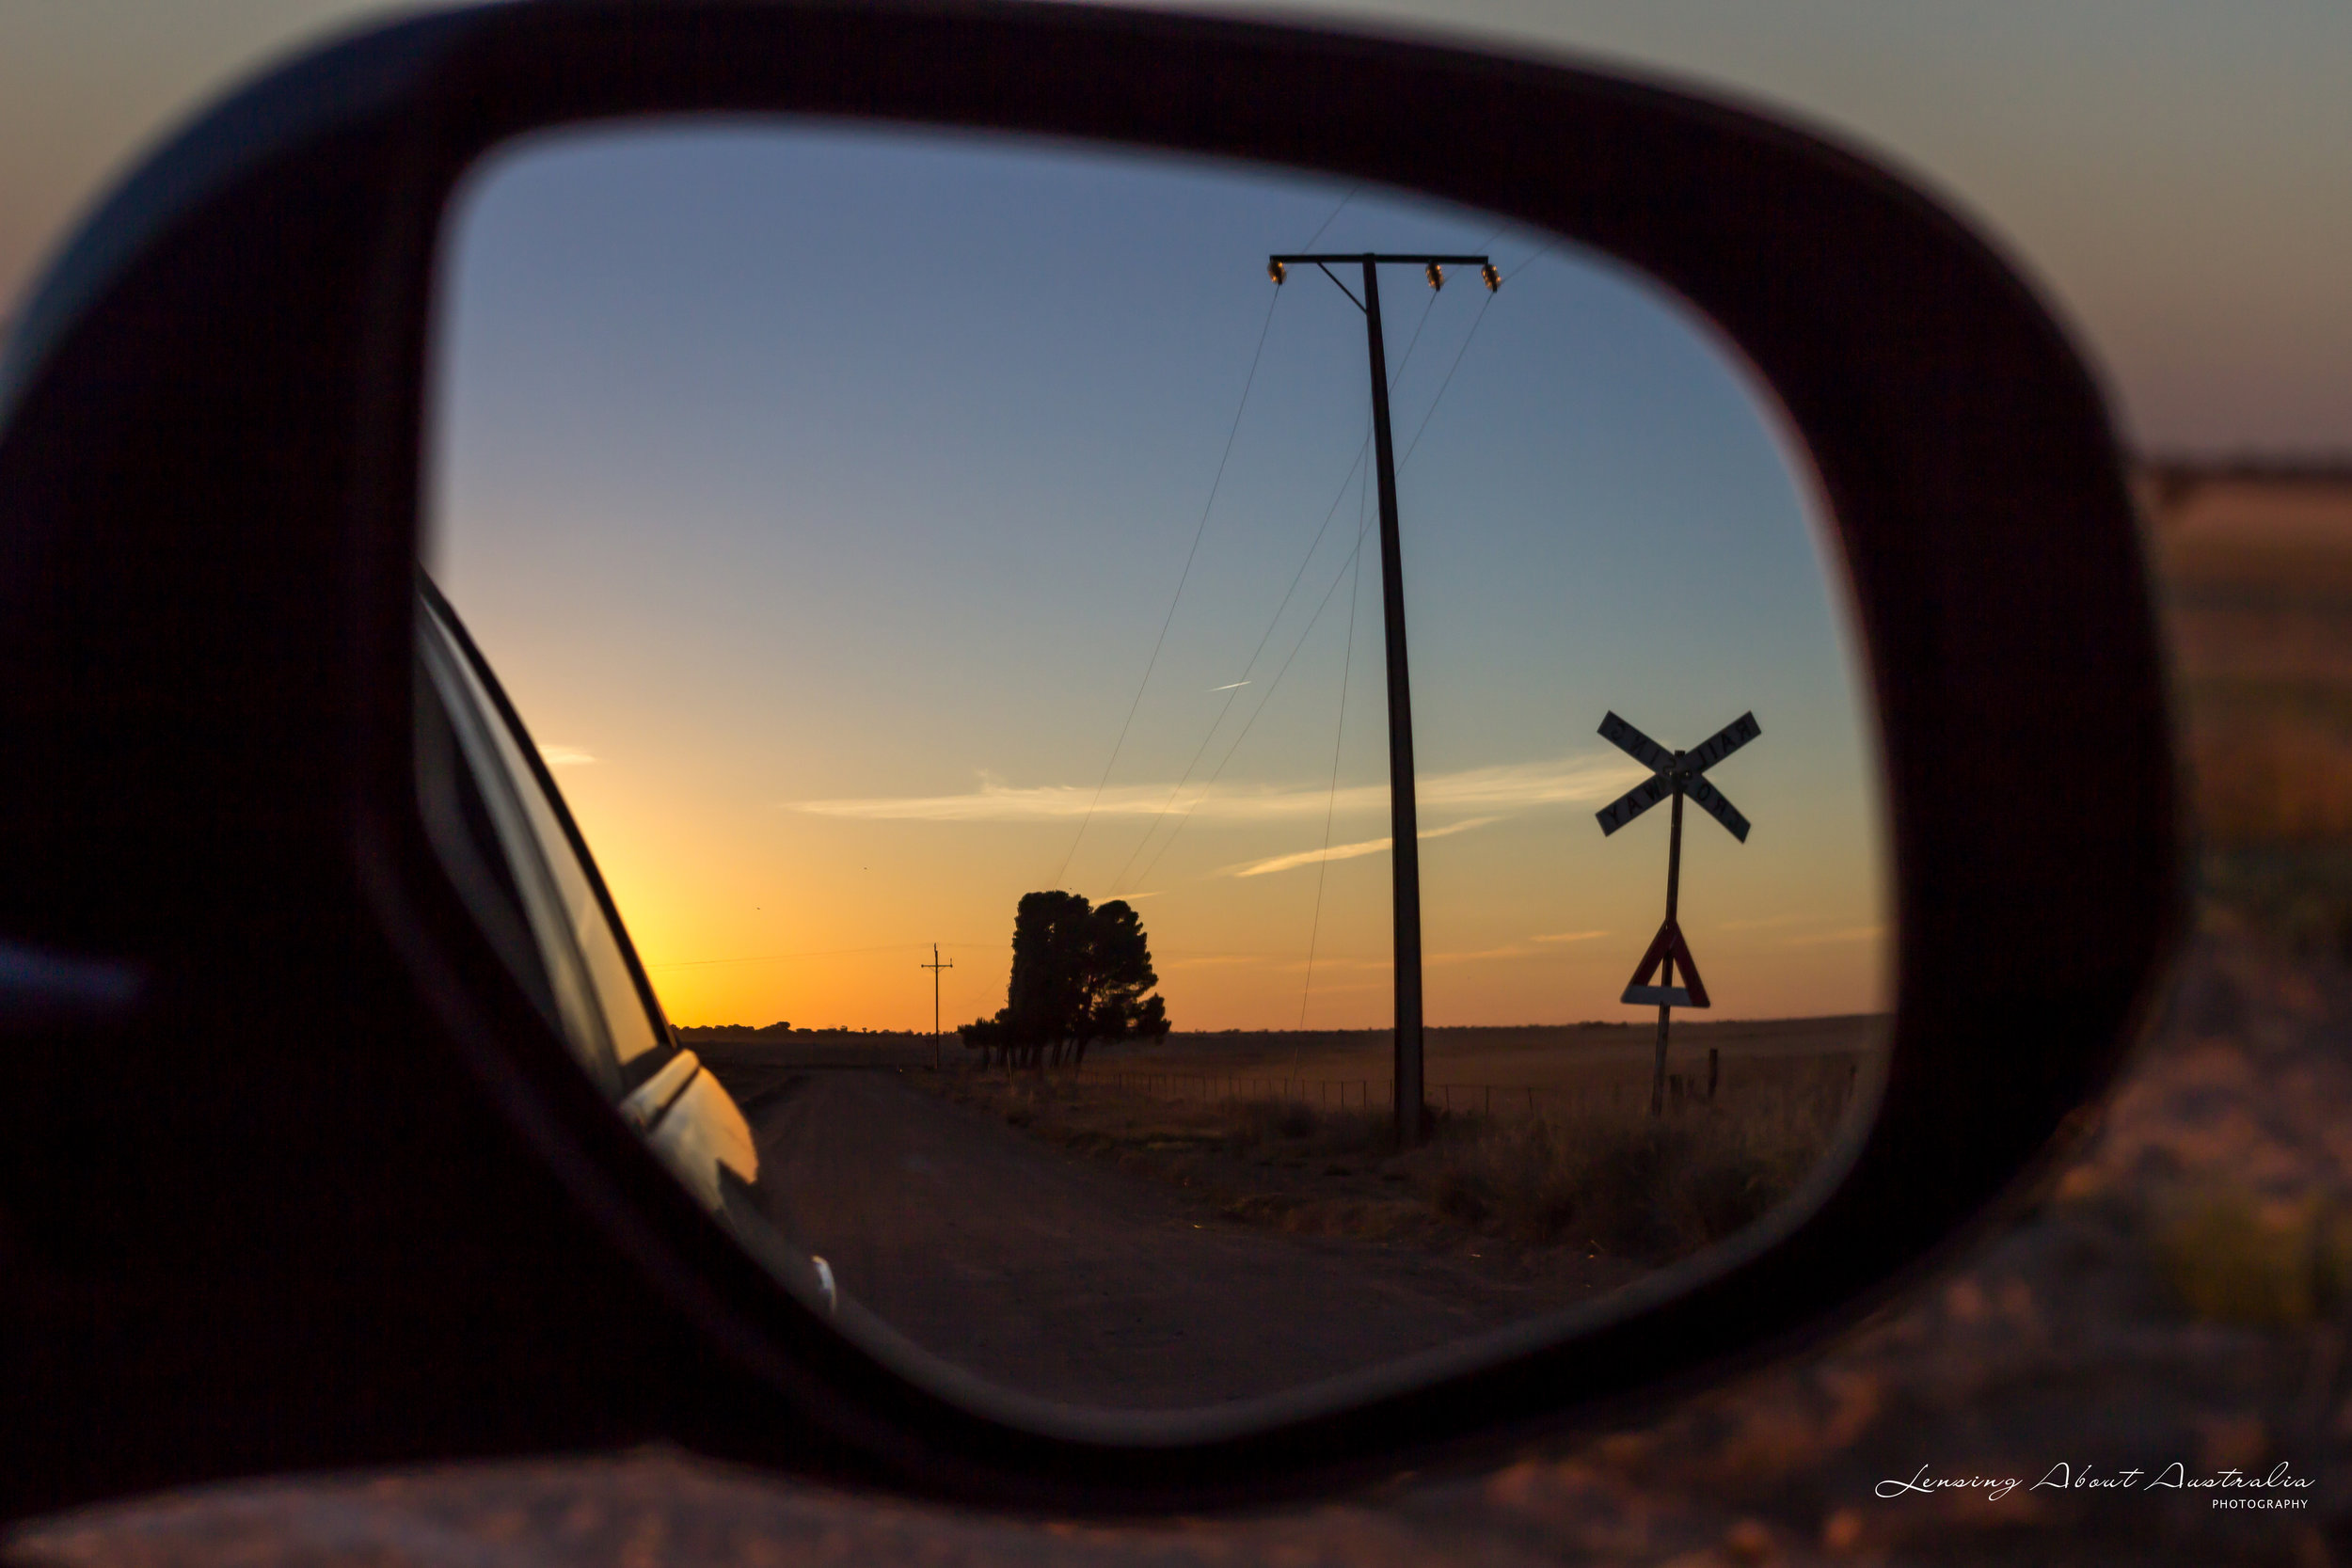 Car side mirror reflection, Canon EOS 600D; ISO 200, f5.6, 1/250sec.